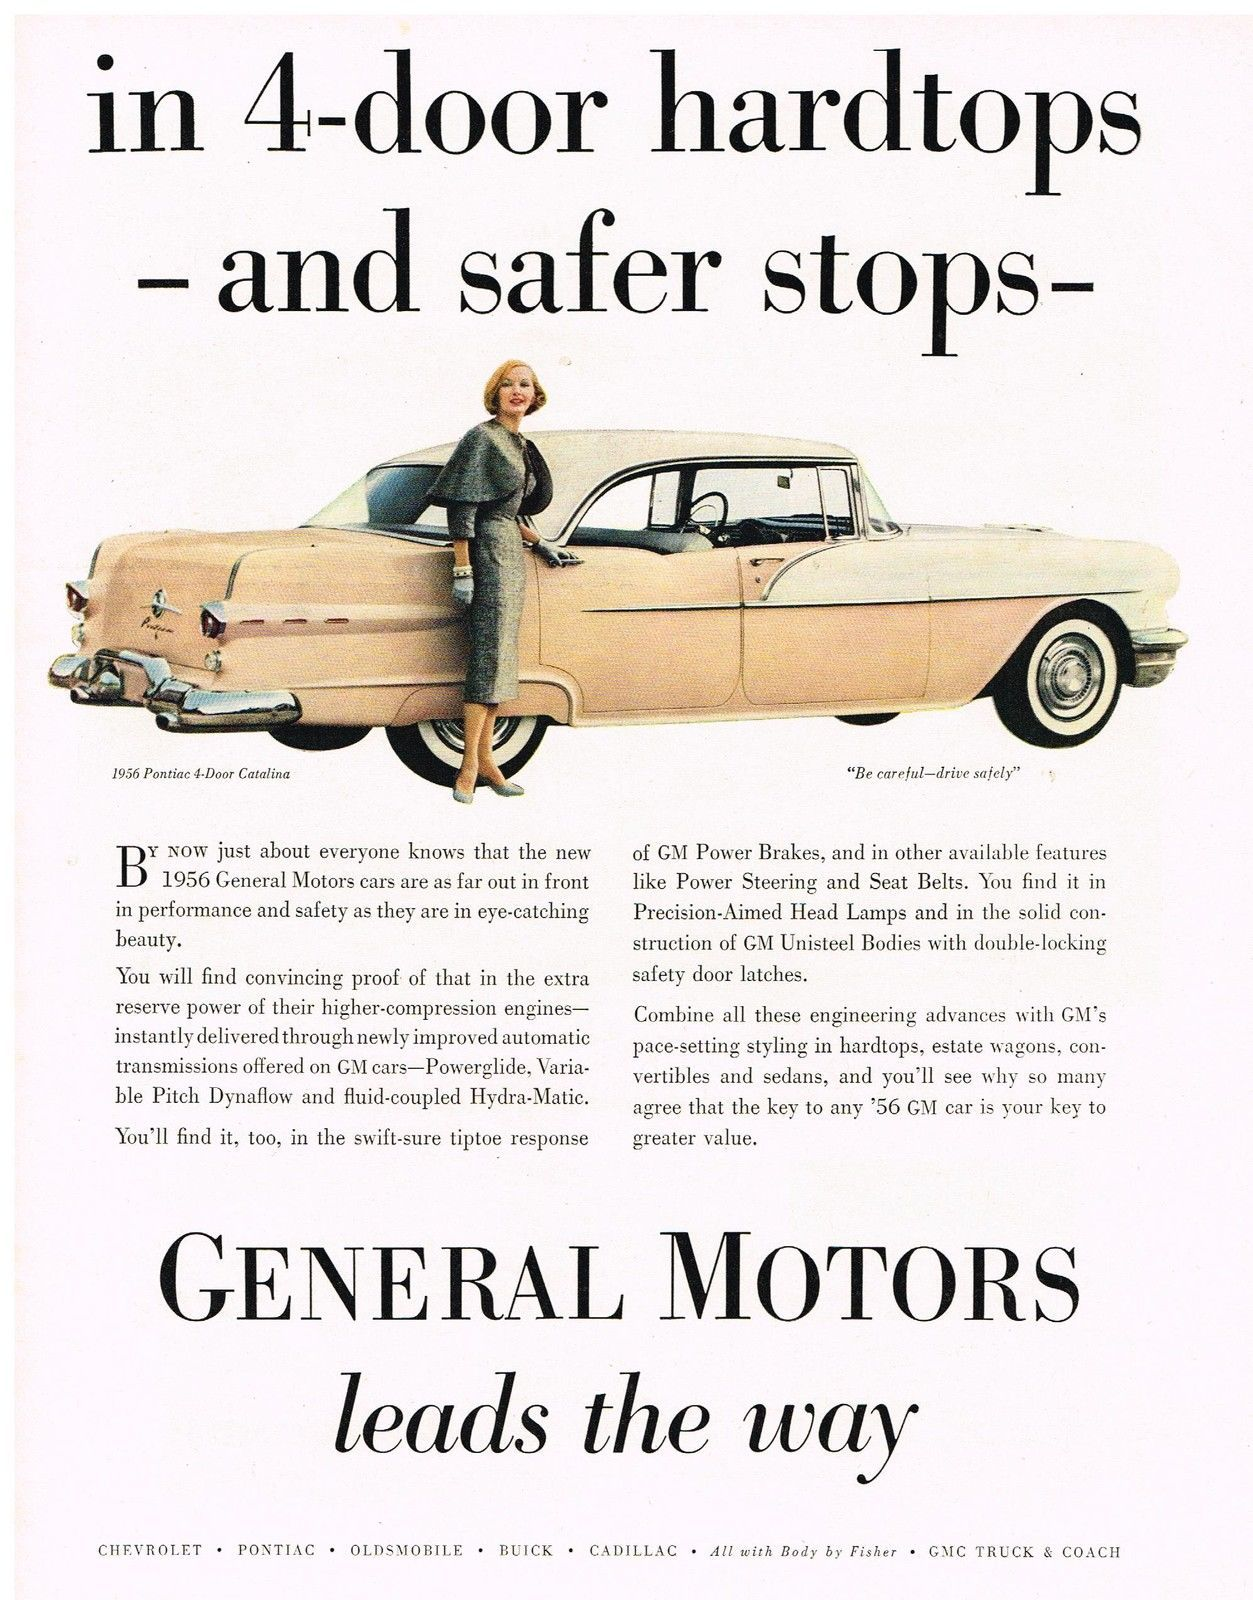 Vintage 1956 Magazine Ad Pontiac Far Out Front In Performance Safety & Beauty - $5.93